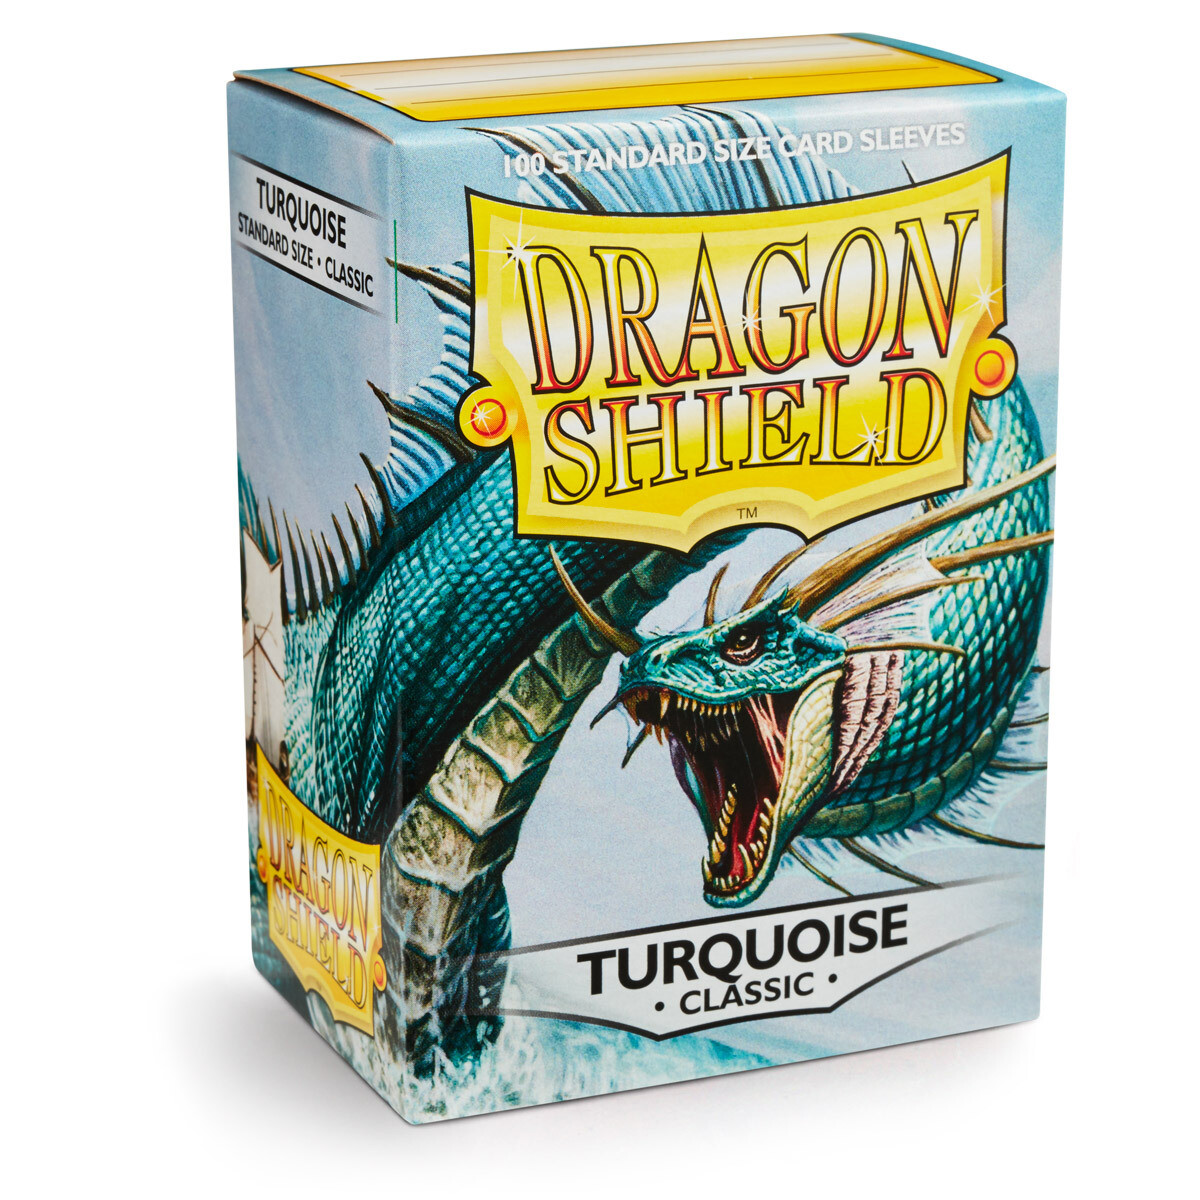 Dragon Shield 100 Sleeves - Turquoise